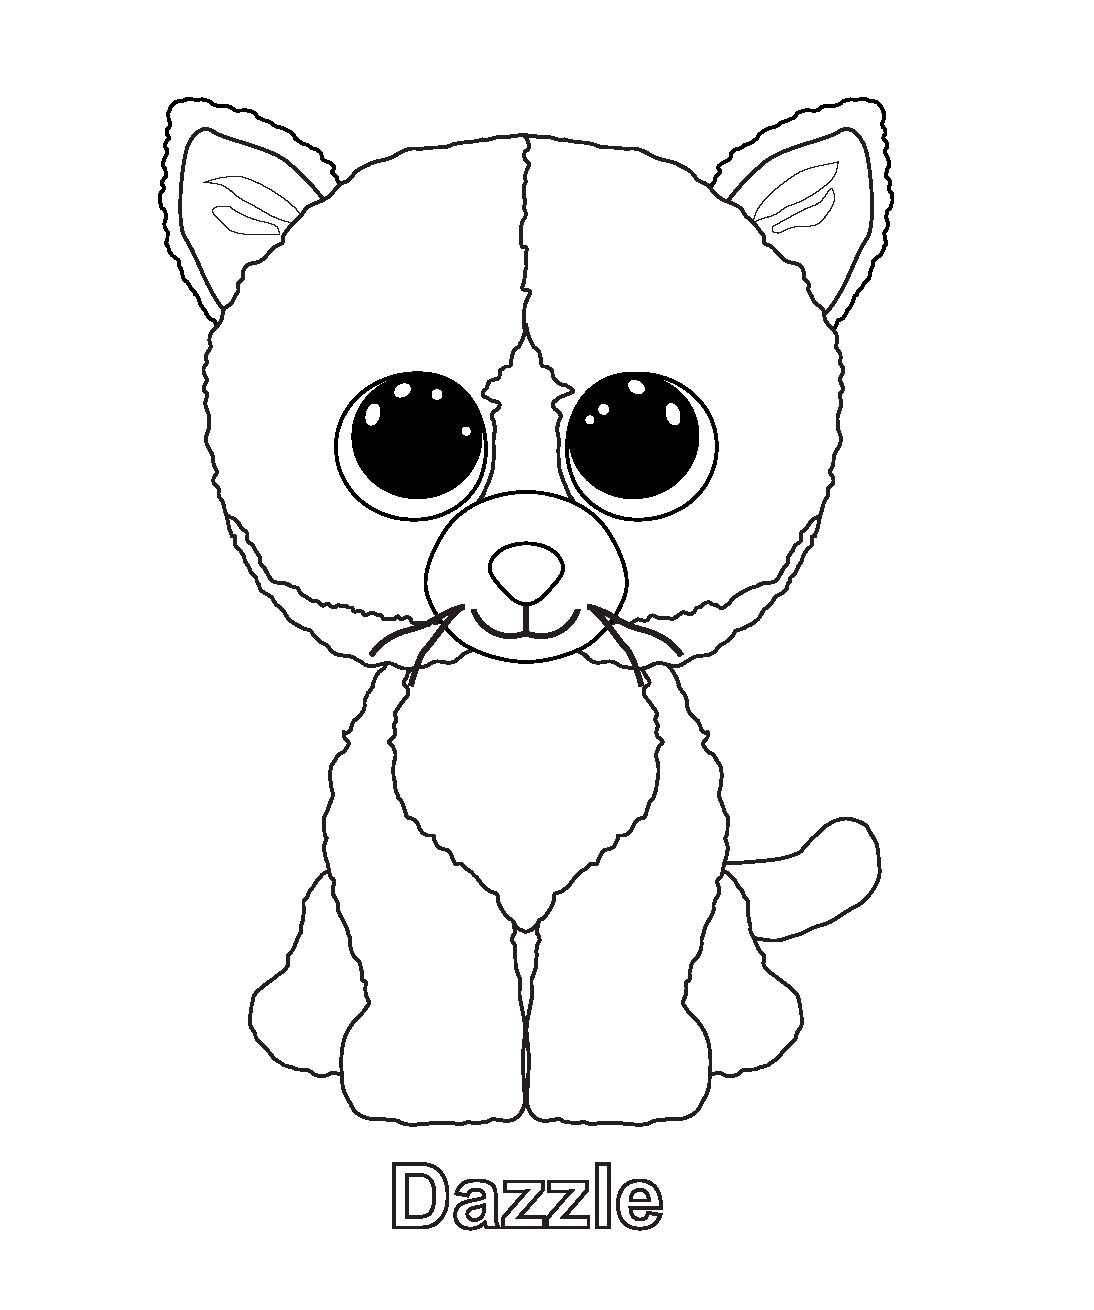 1094x1310 Dazzle Cat Beanie Boo Coloring Page